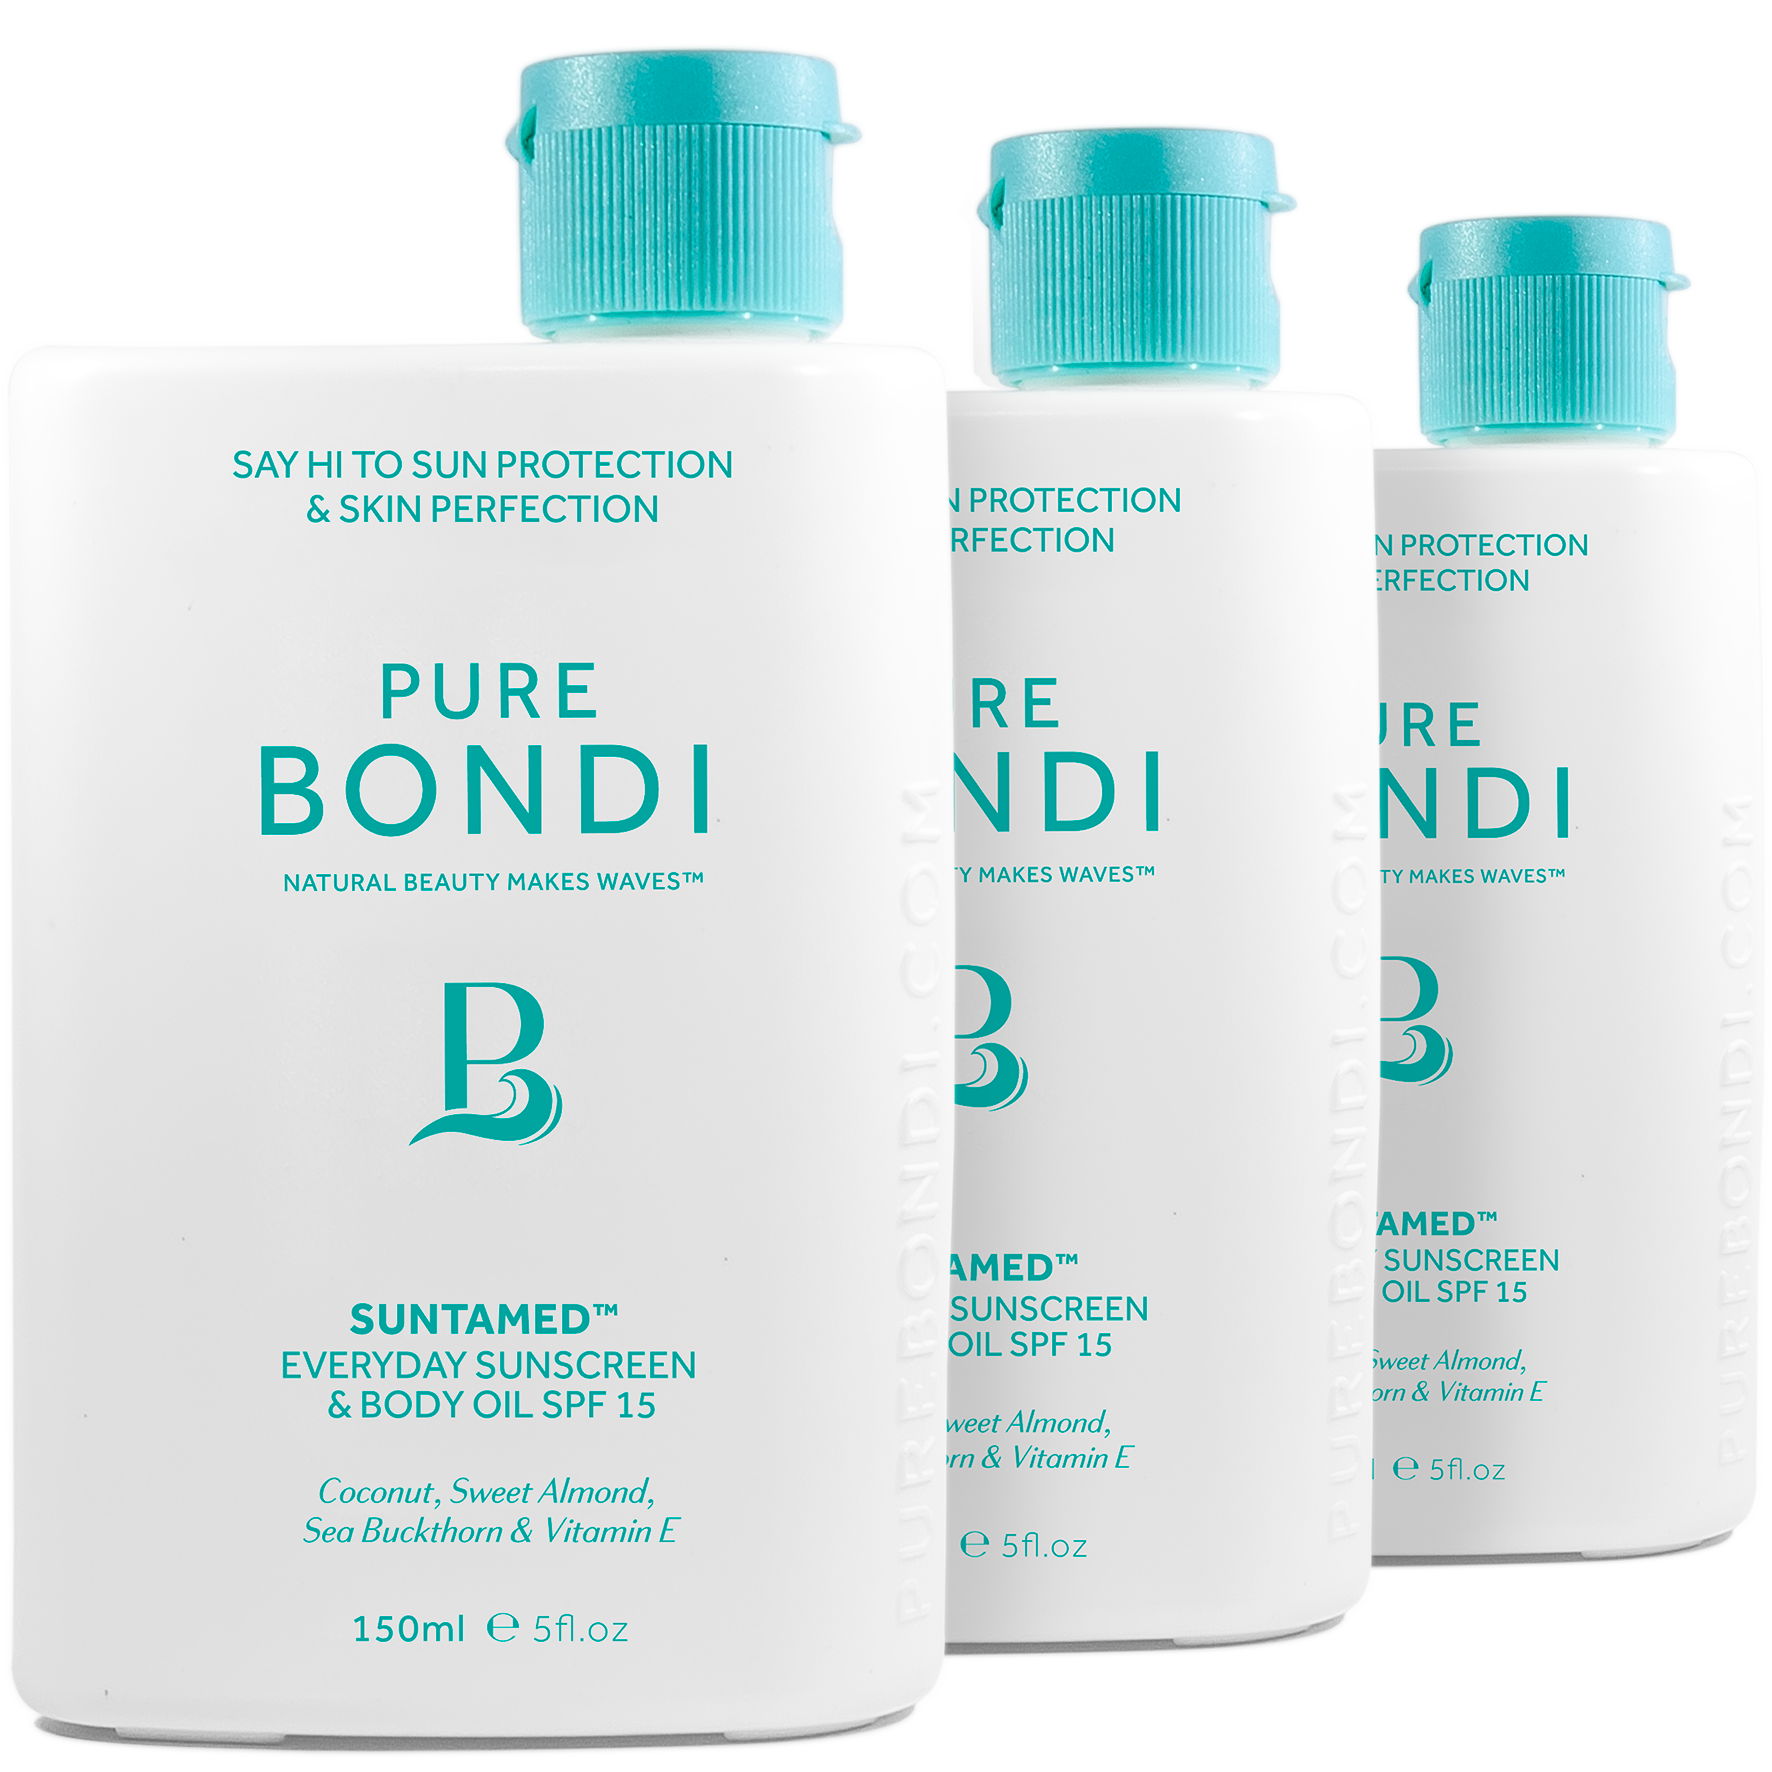 Suntamed Sunscreen & Body Oil SPF 15 - Trio